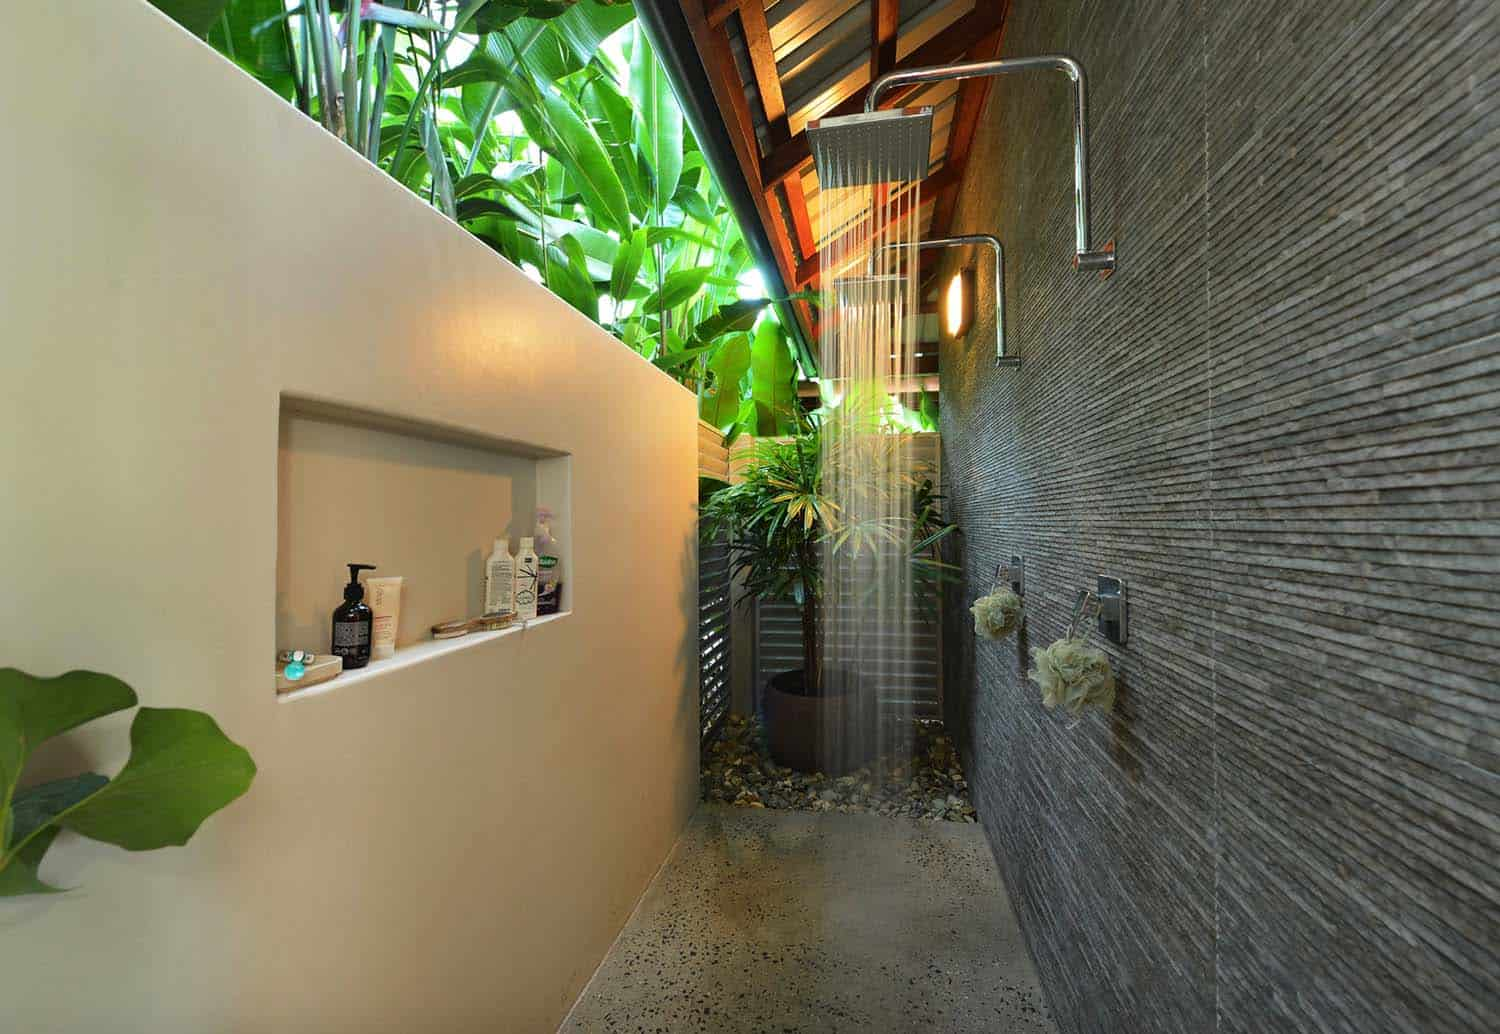 30+ Invigorating Outdoor Shower Ideas To Escape Into Nature on Outdoor Water Softener Enclosure  id=28599